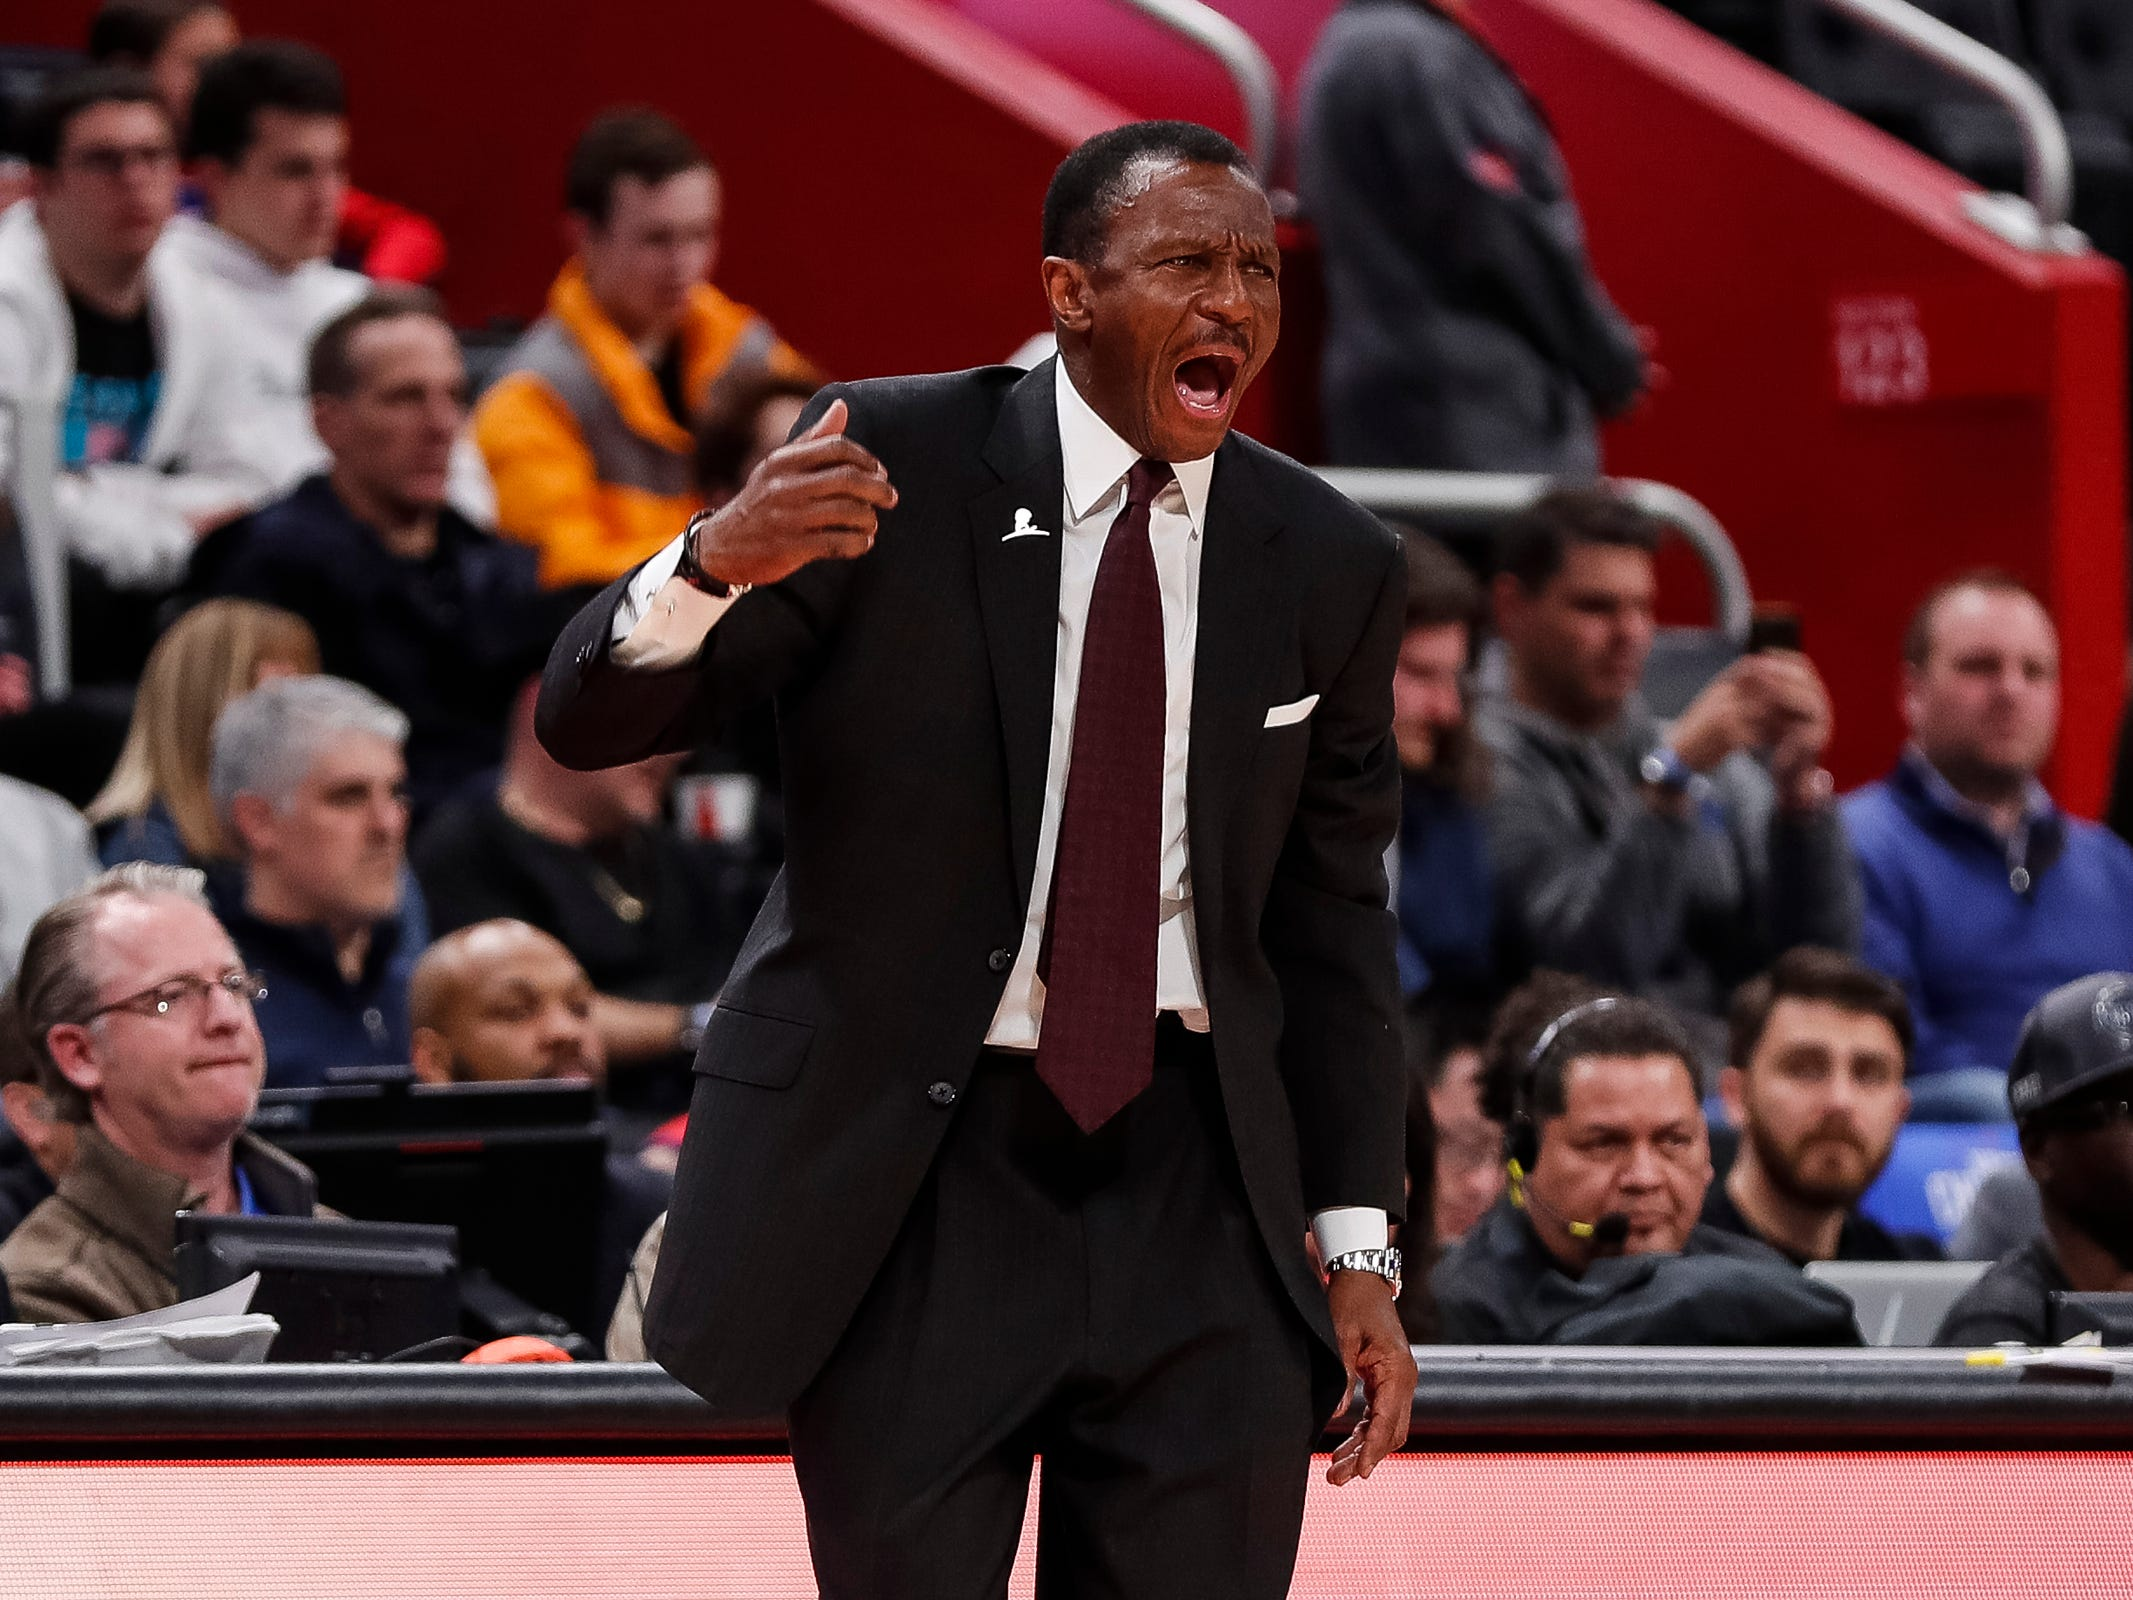 Pistons head coach Dwane Casey reacts to a play during the Pistons' 99-90 win over the Trail Blazers on Saturday, March 30, 2019, at Little Caesars Arena.